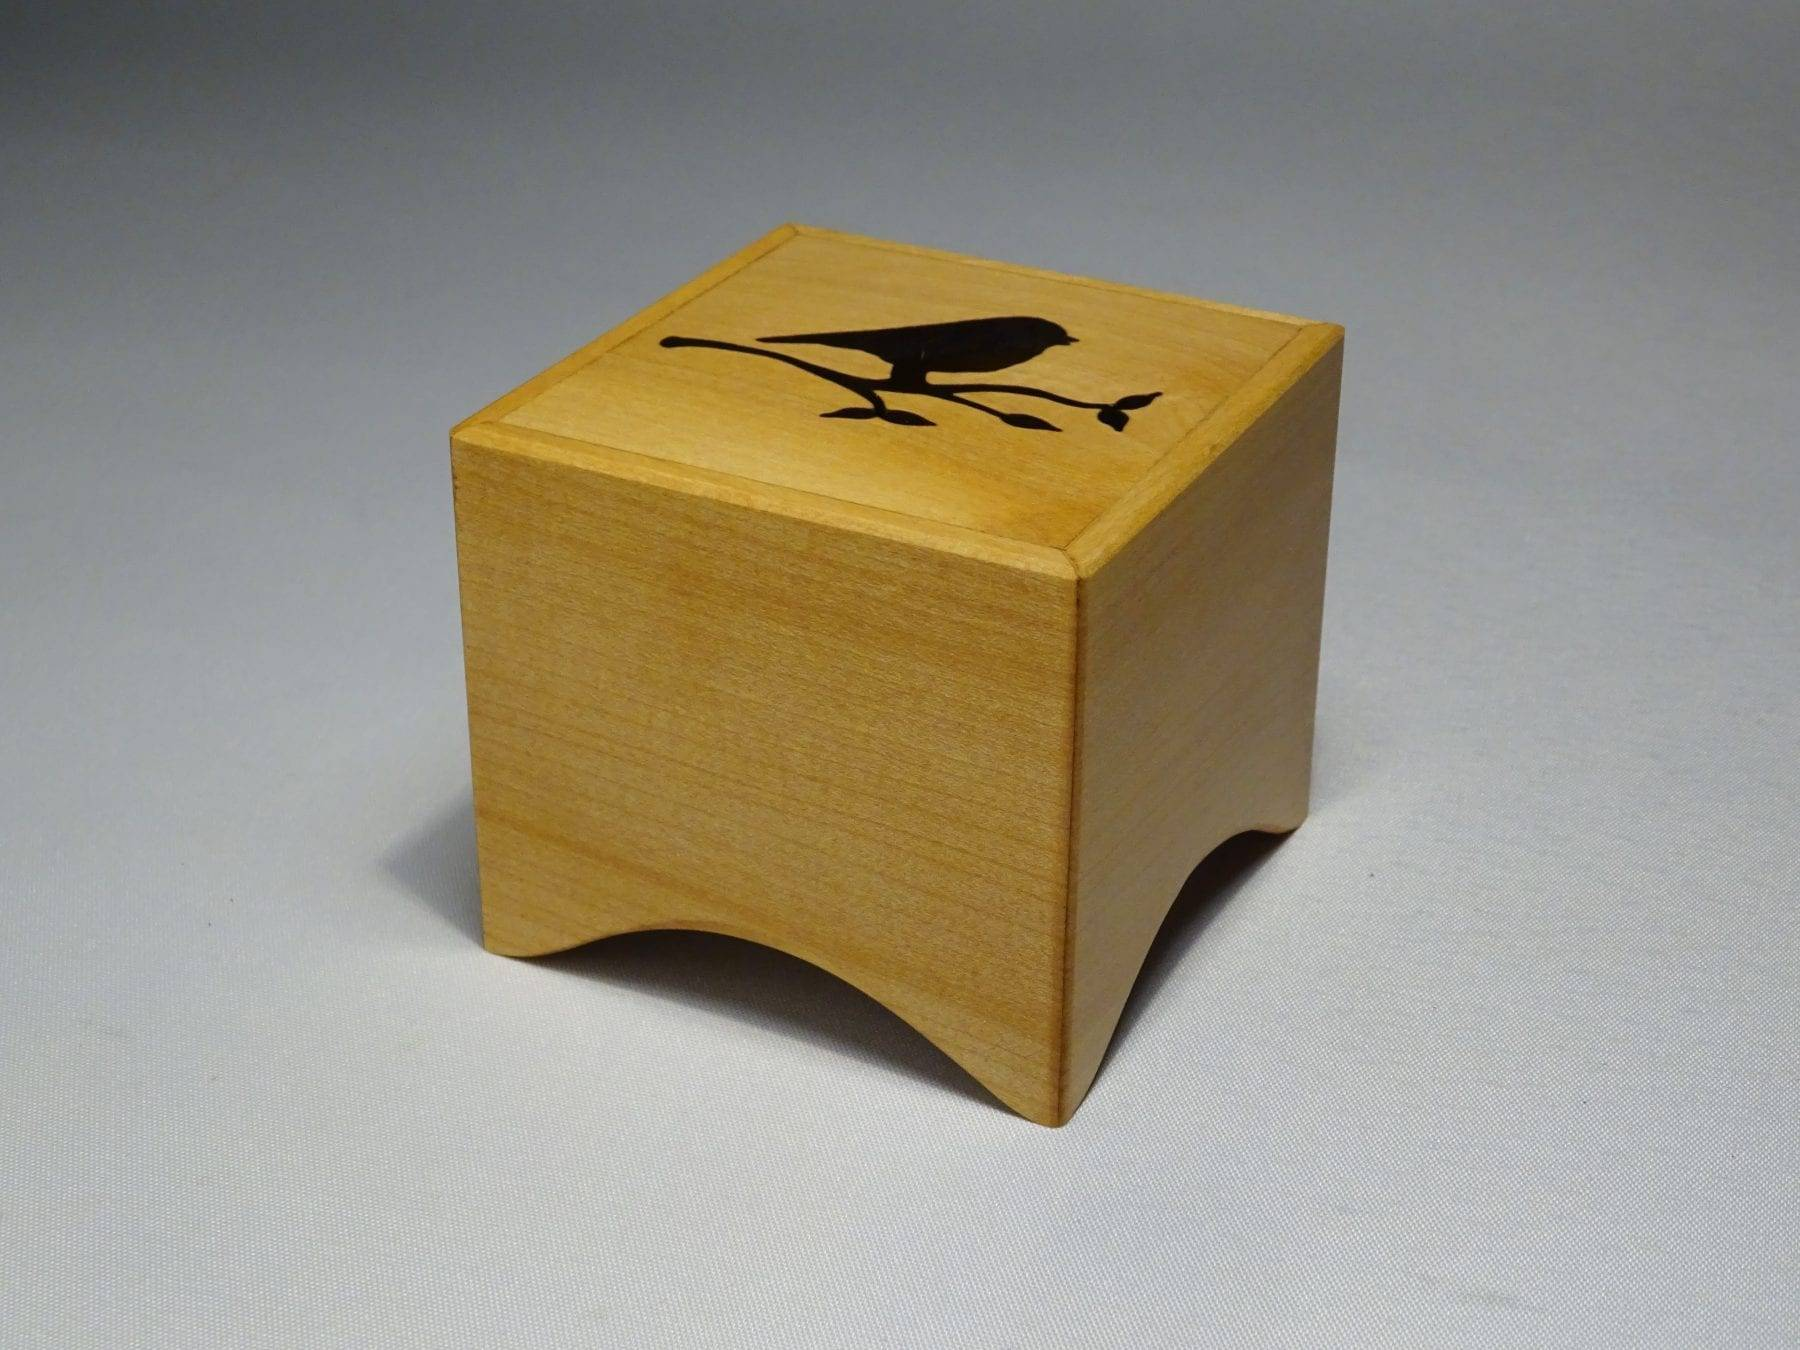 Small music box made of wood